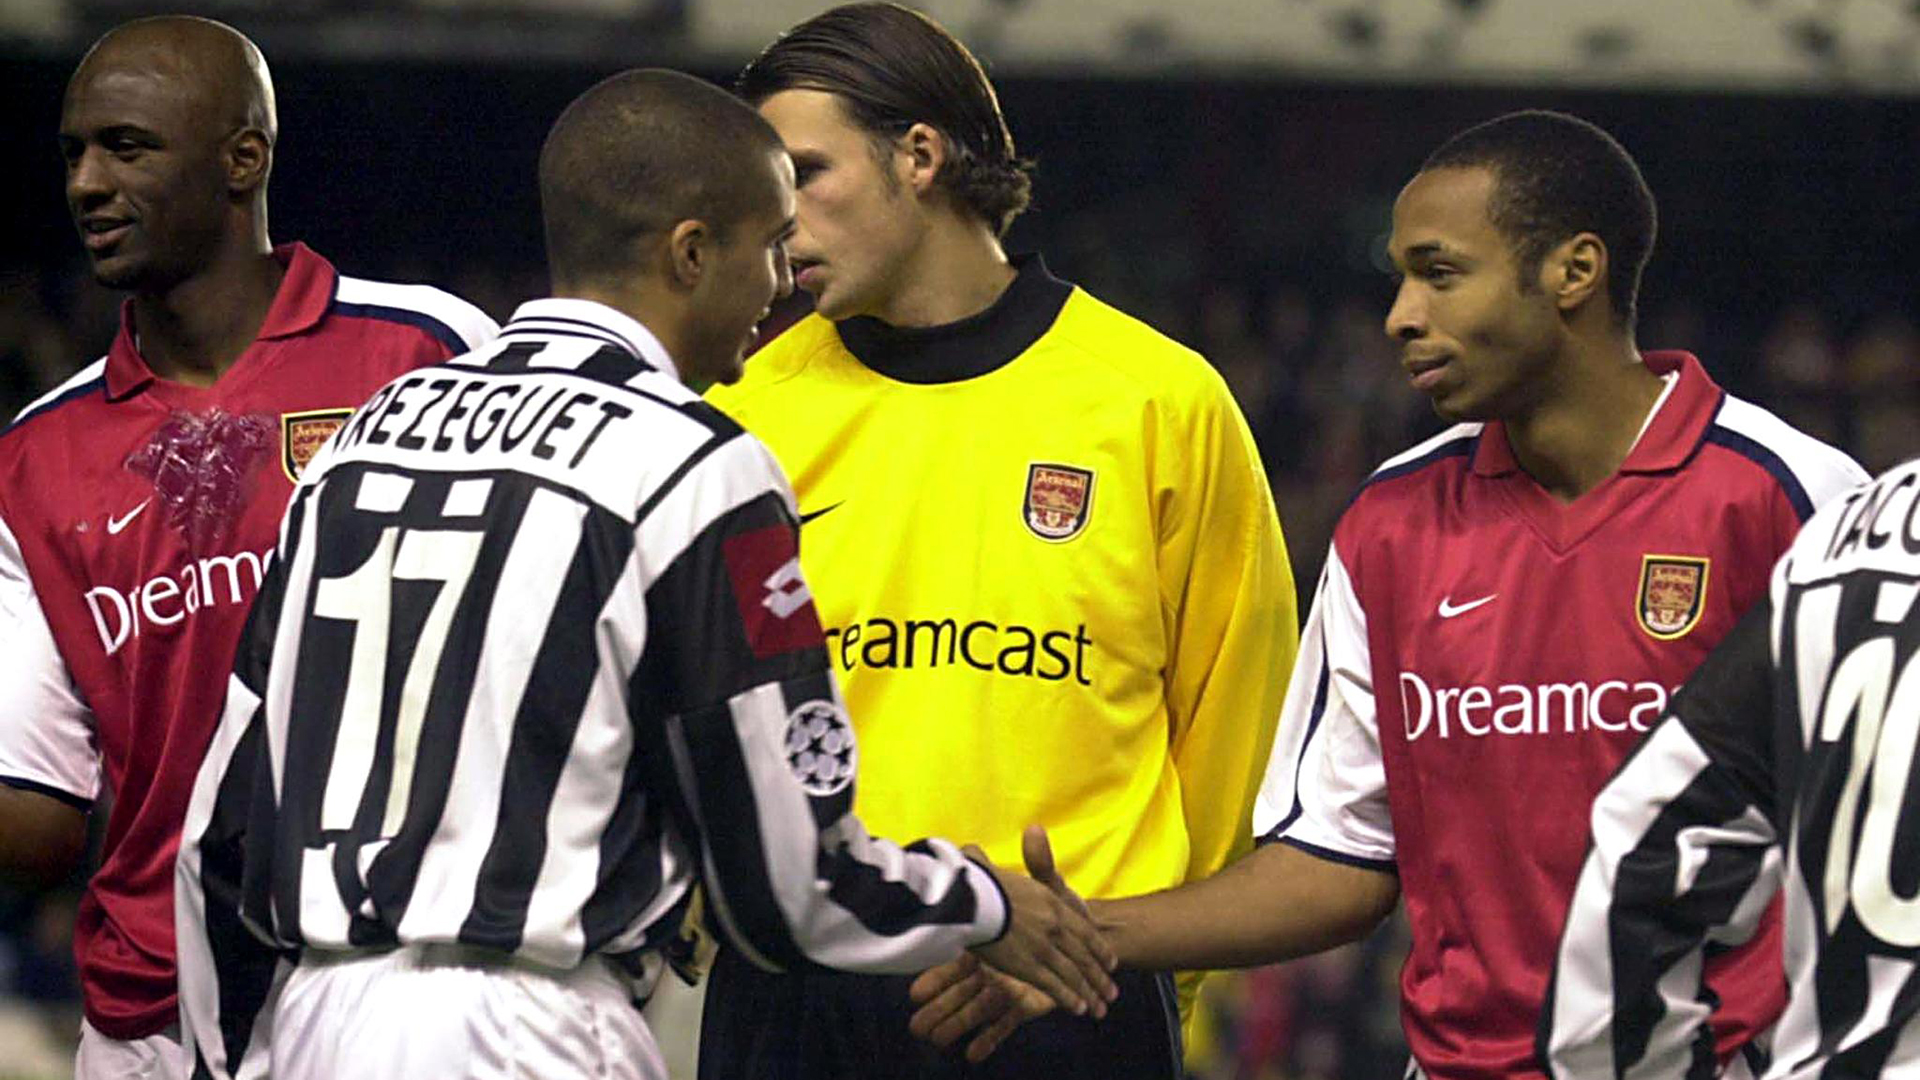 Why Arsenal s greatest ever player Thierry Henry flopped at